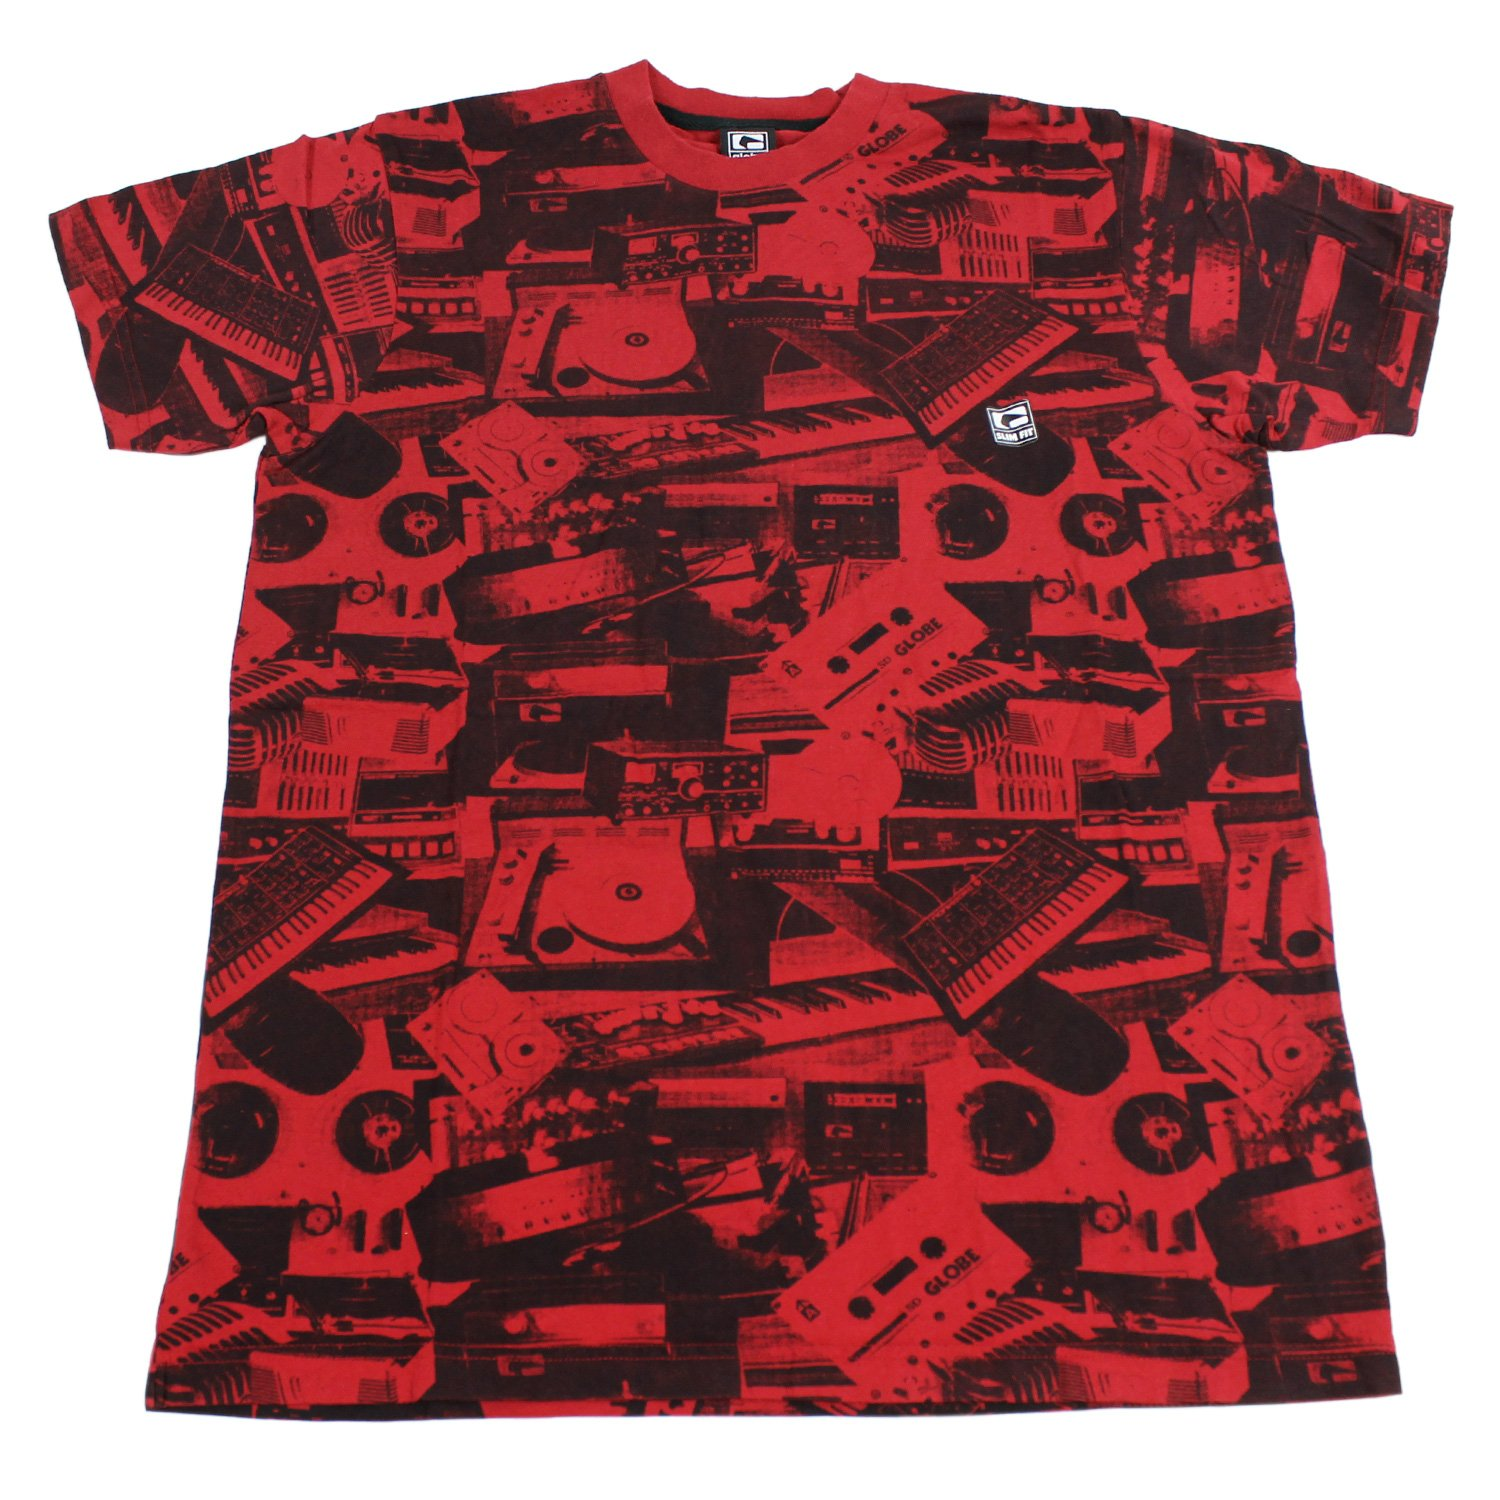 GLOBE Skate Shoes SHIRT SOUND SYSTEM CUSTOM RED Sz MED